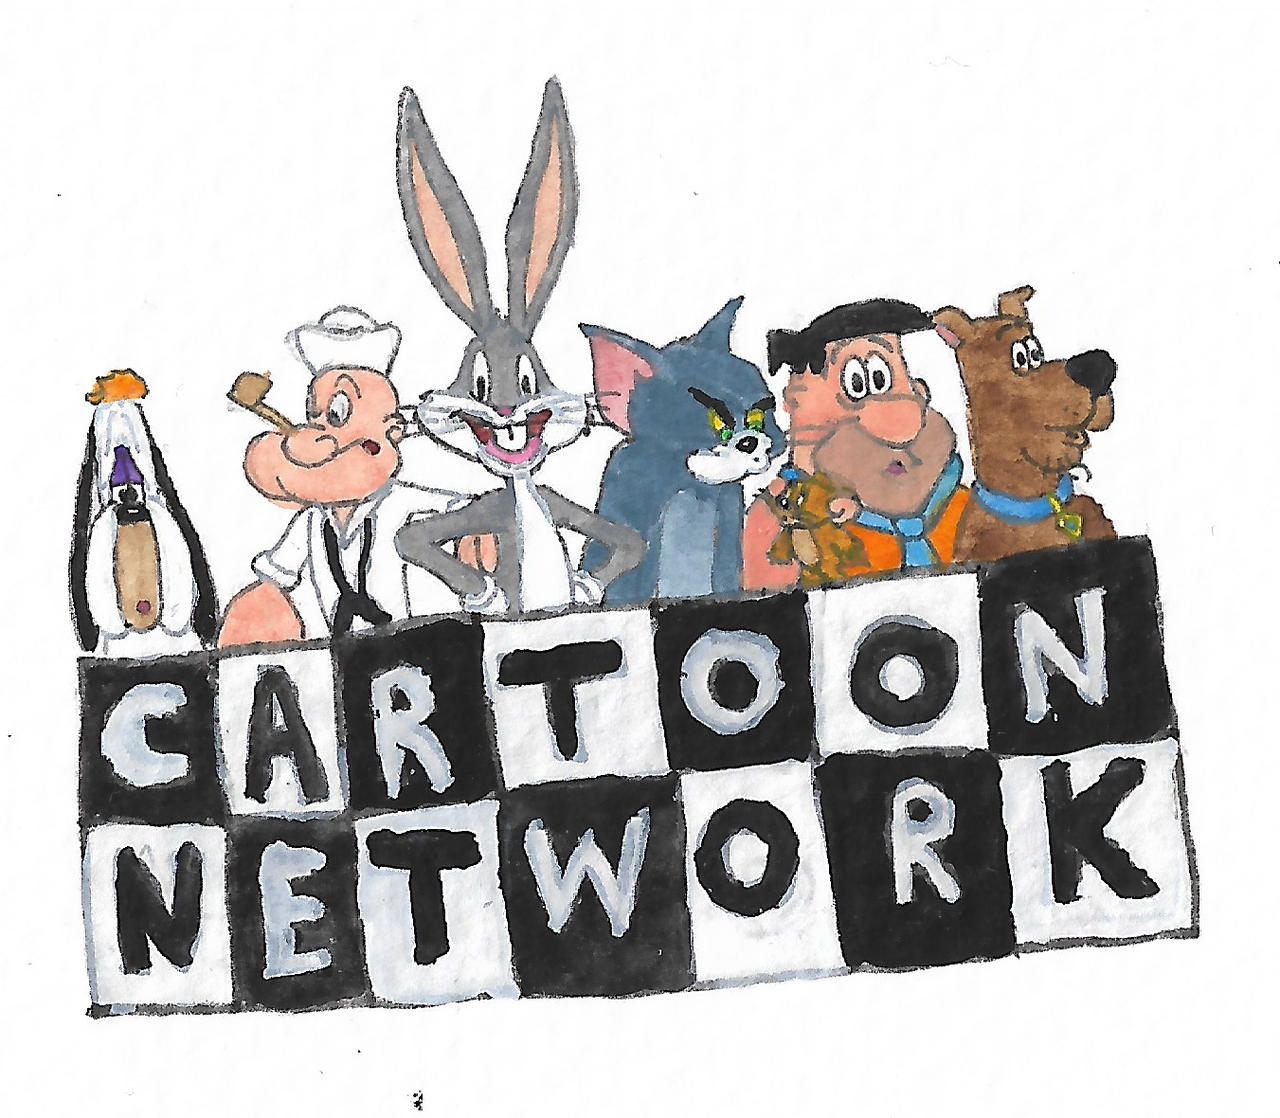 In the tribute of Cartoon Network